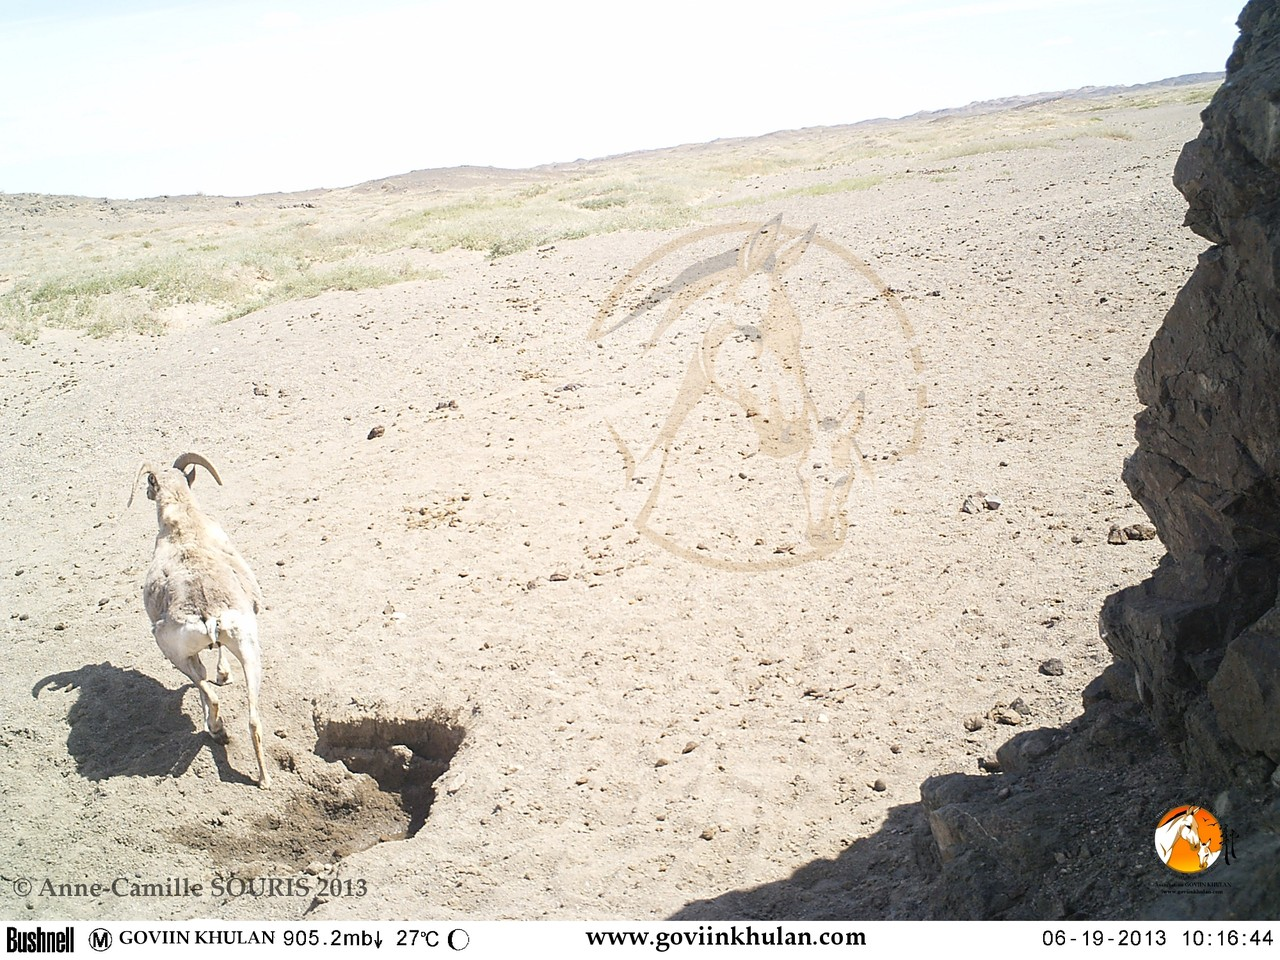 Argali/wild sheep leaving a hole dug by a khulan at a dry river bed / Gobi, Mongolia / June 2013